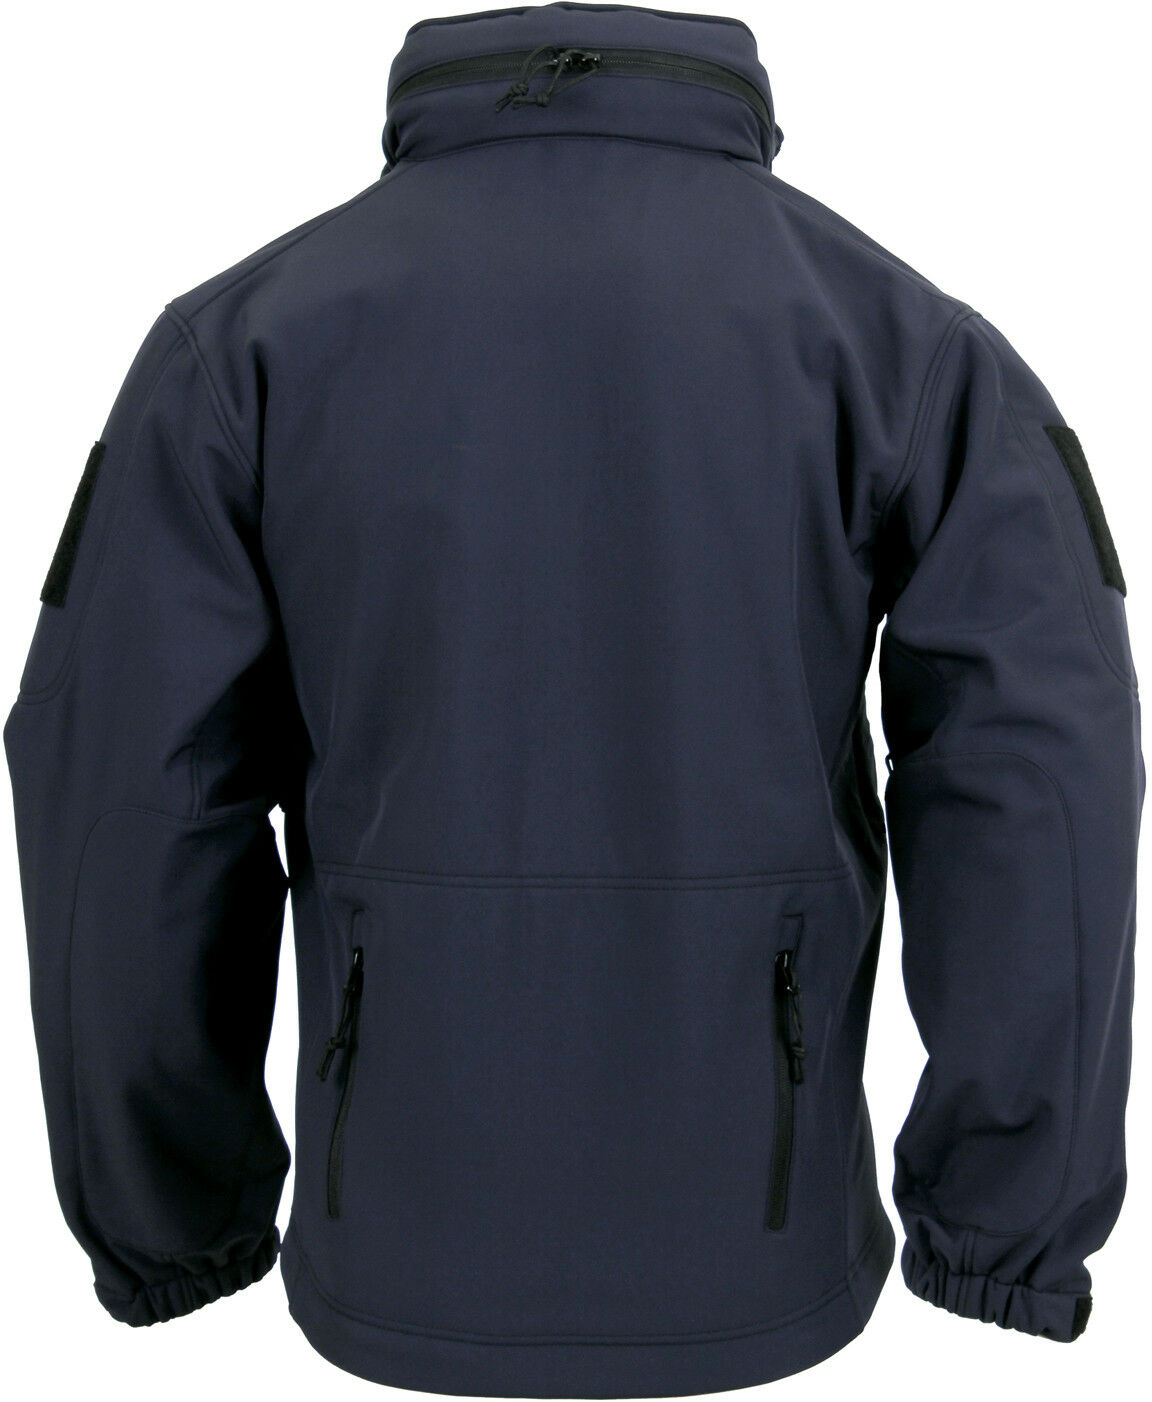 Navy Blue Waterproof Police Tactical Concealed Carry Soft Shell Jacket 56385